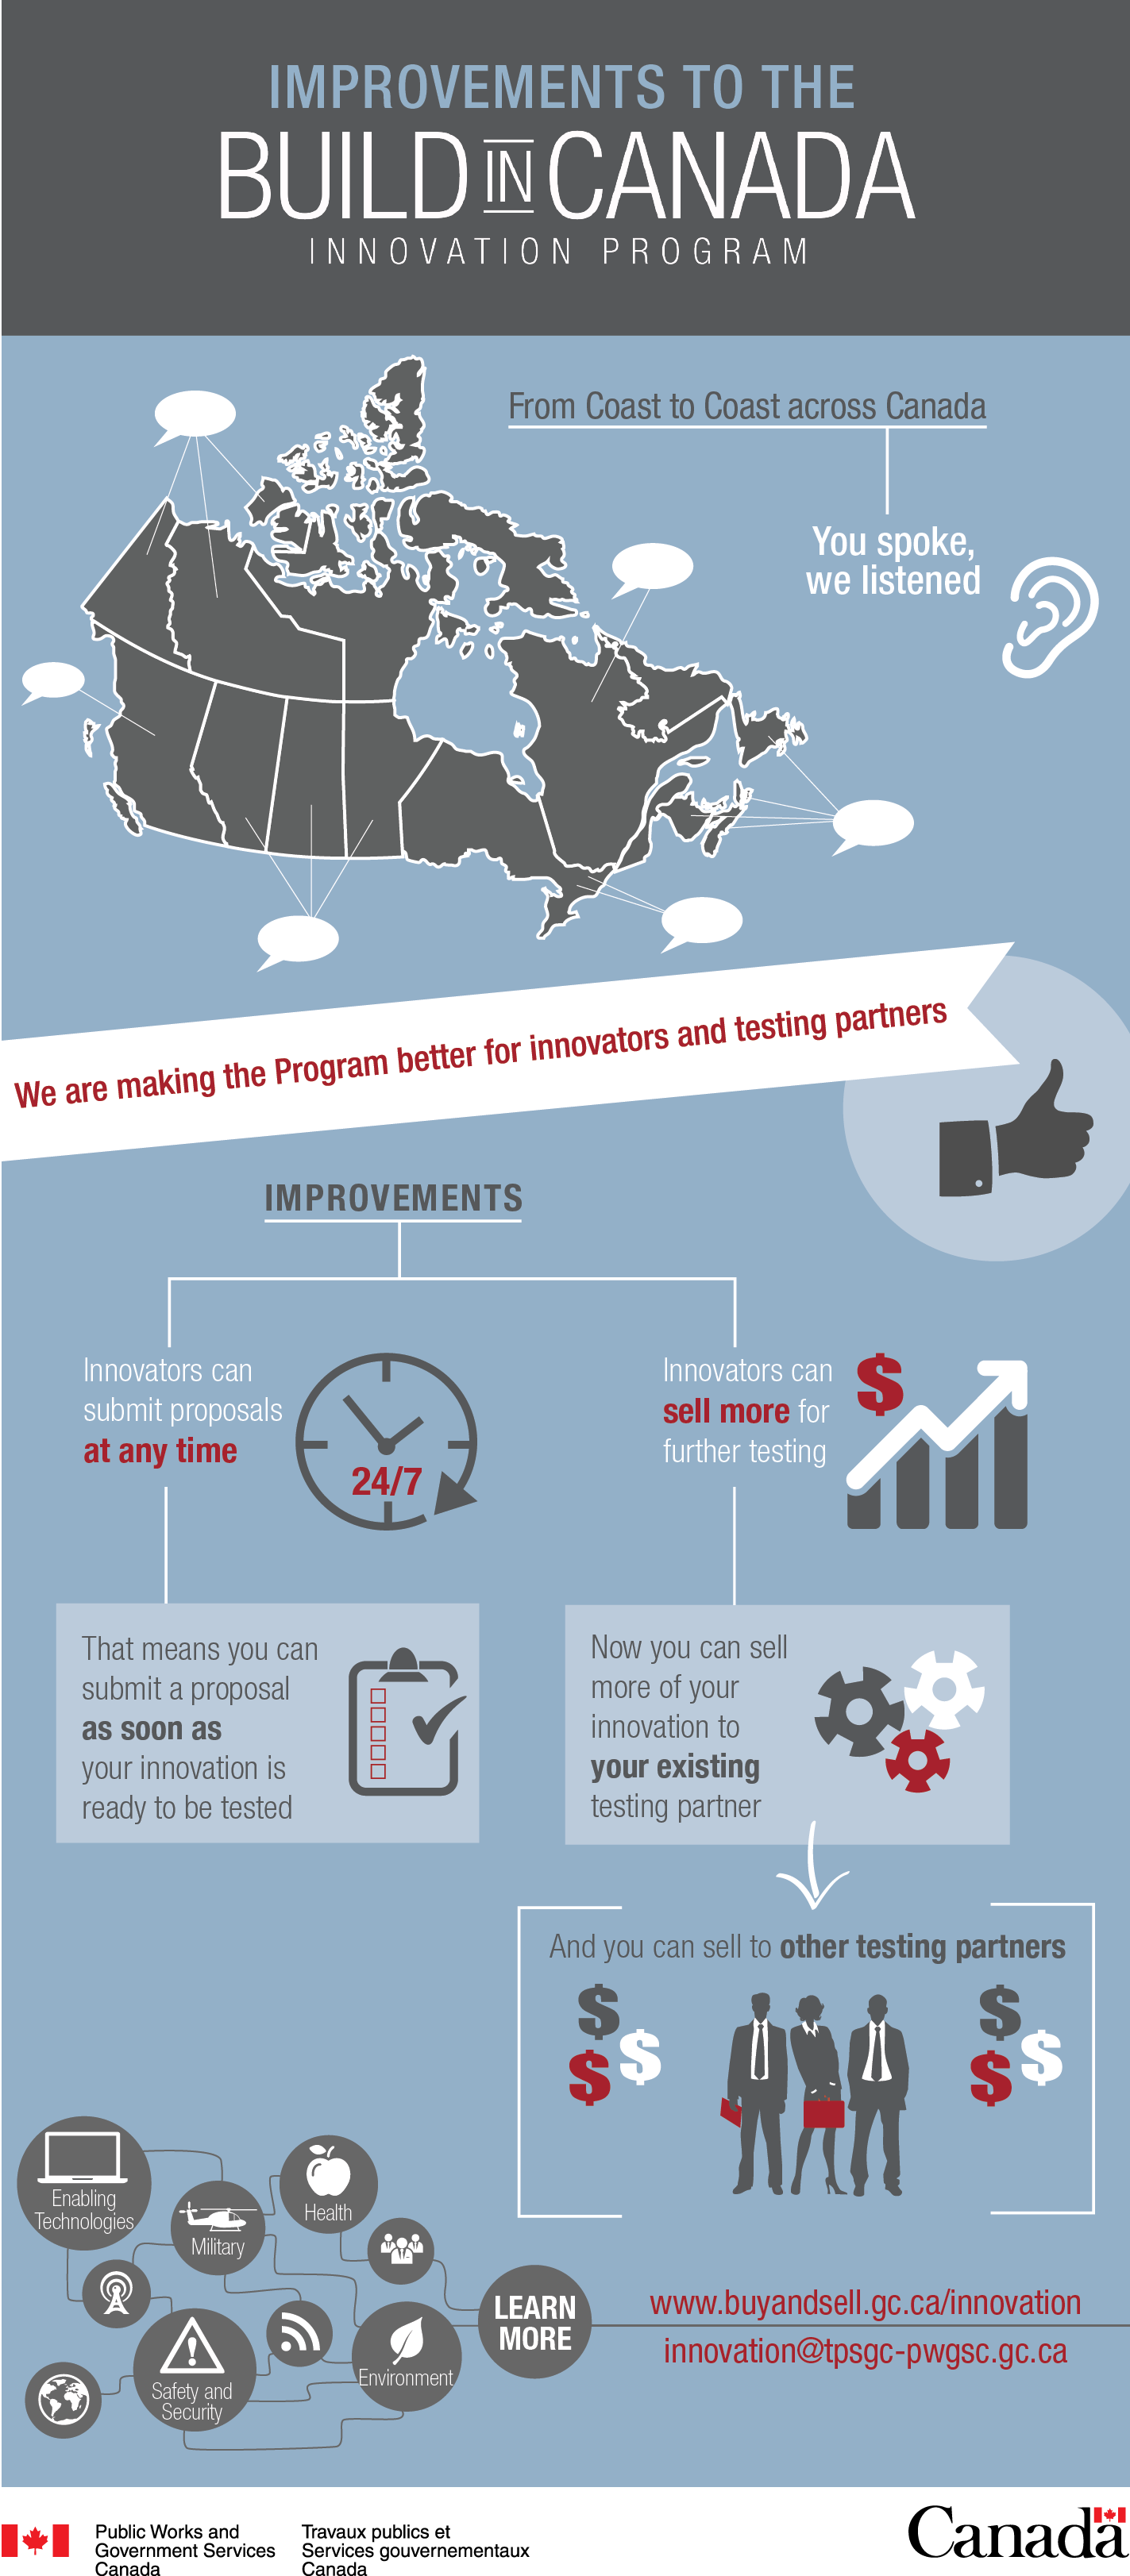 Infographic on the improvements to the Build in Canada Innovation Program